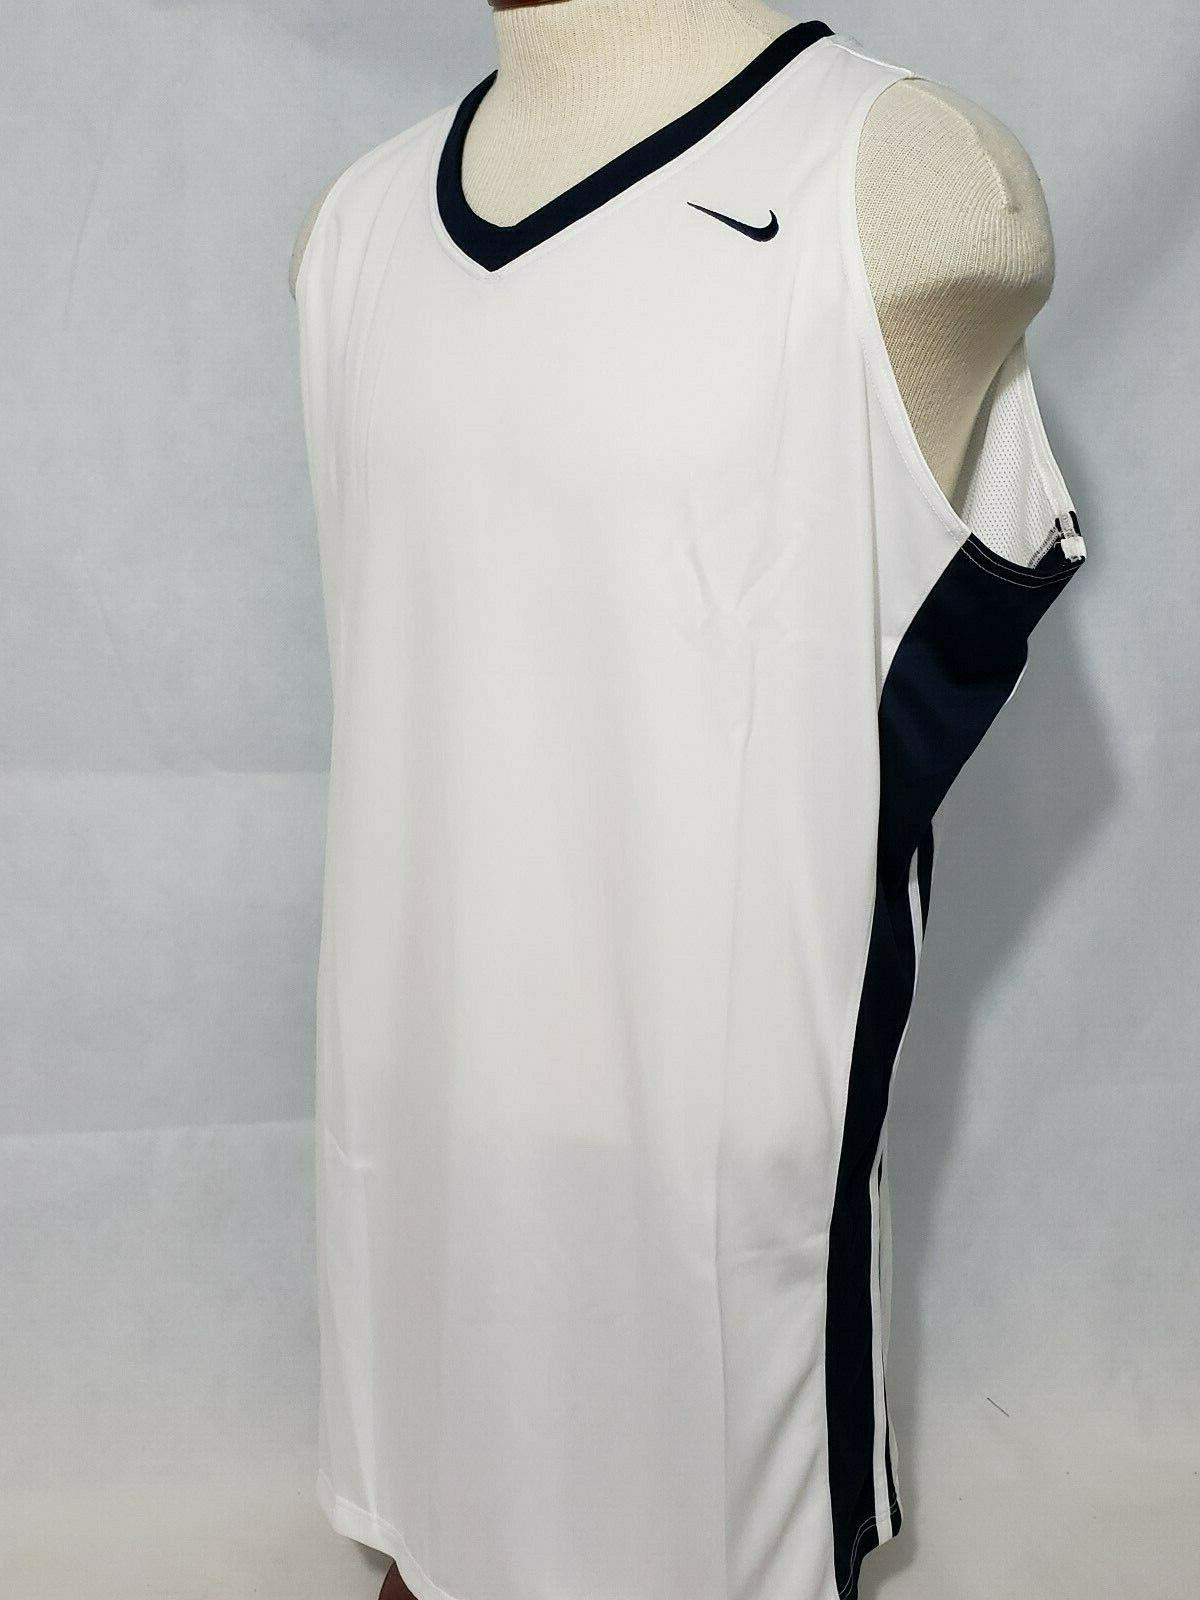 Nike Jersey Blue White Size NWT